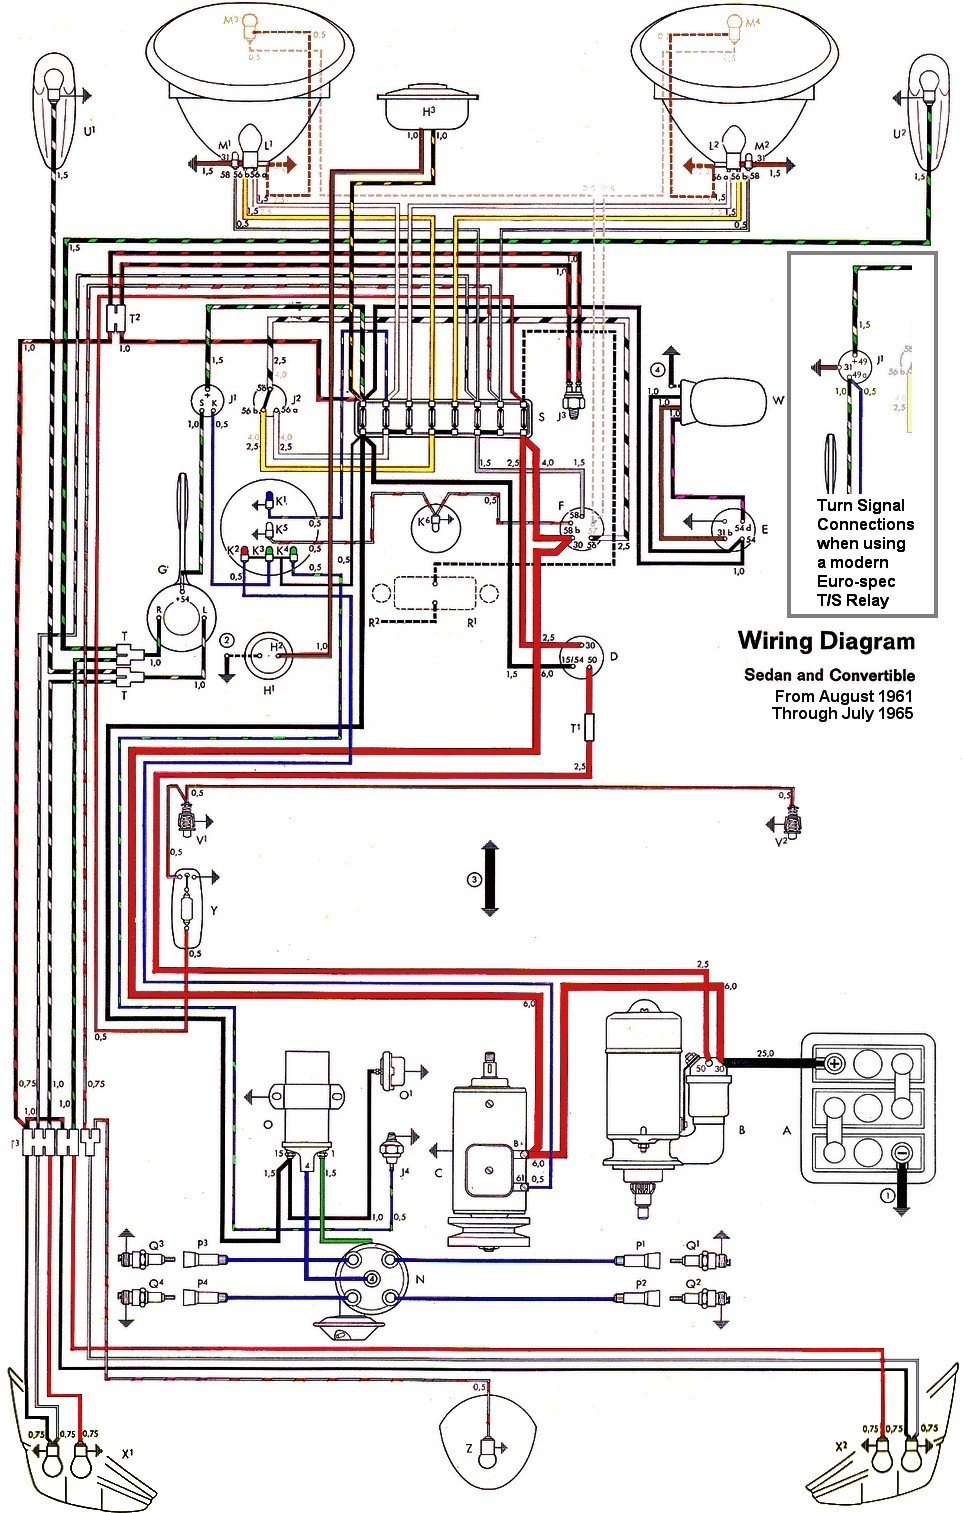 bug_62 65withinset thesamba com type 1 wiring diagrams super beetle wiring diagram at bayanpartner.co